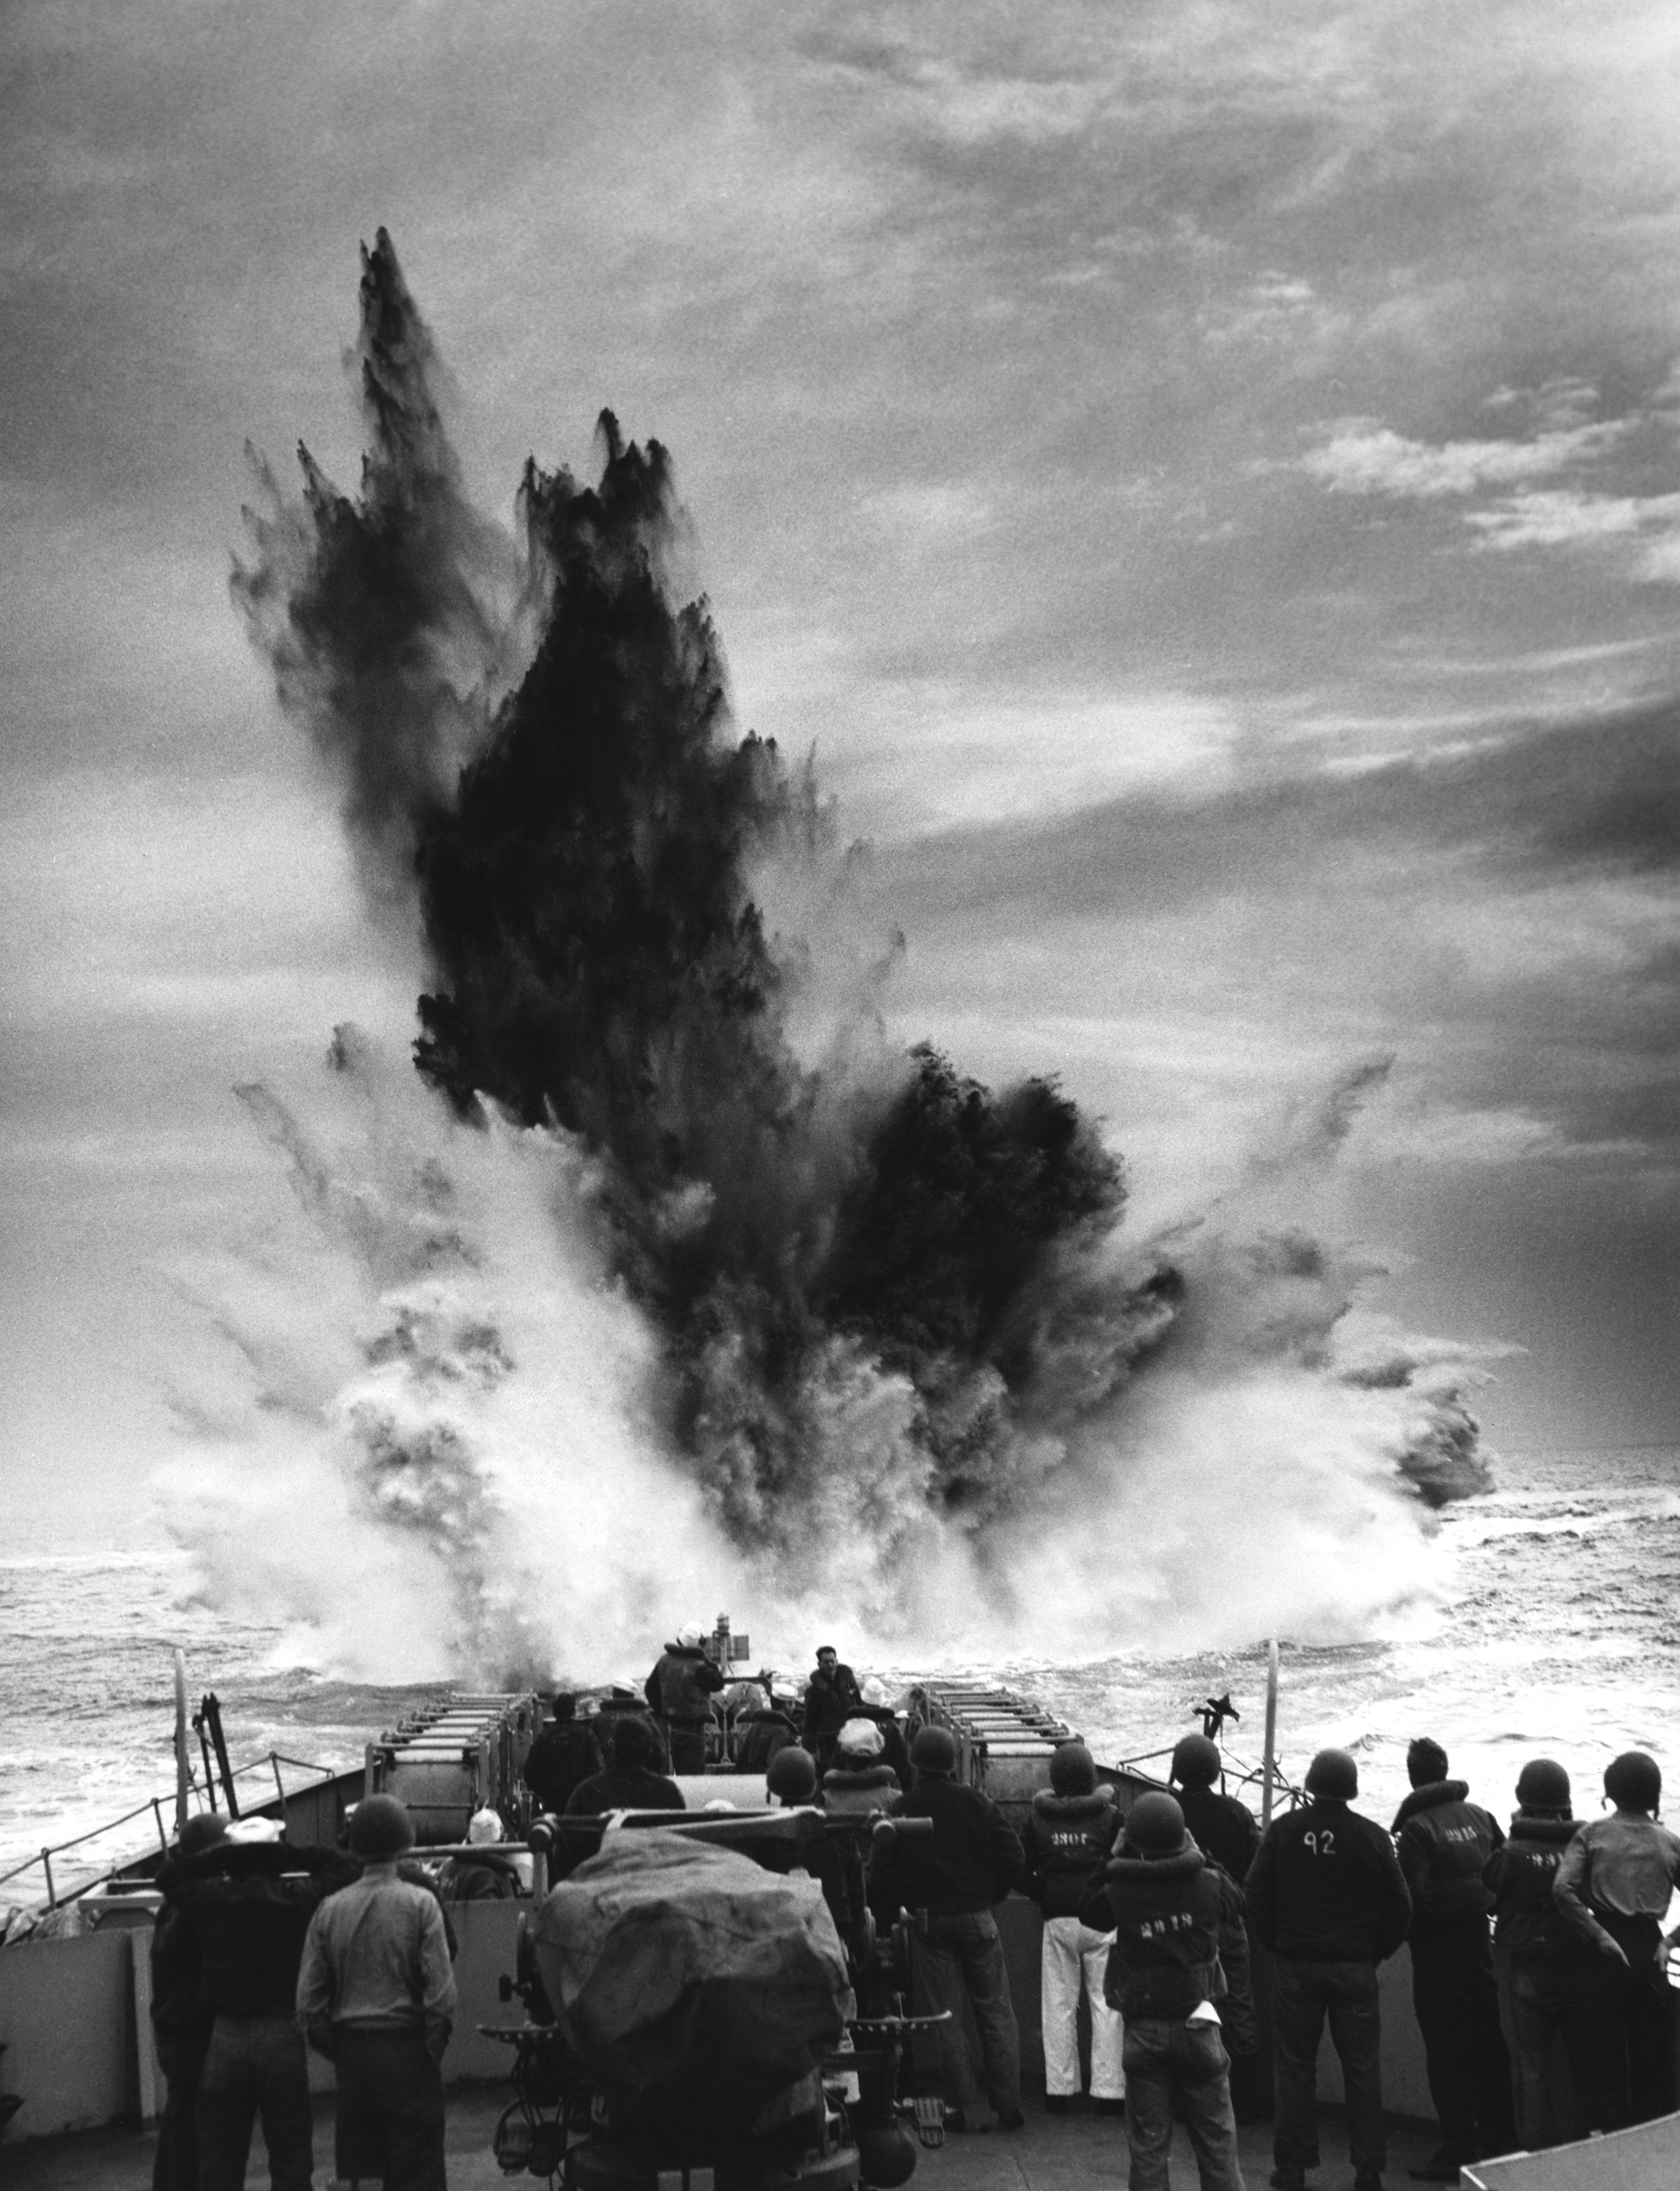 April 1943 - Depth charges dropped on U-Boat North Atlantic